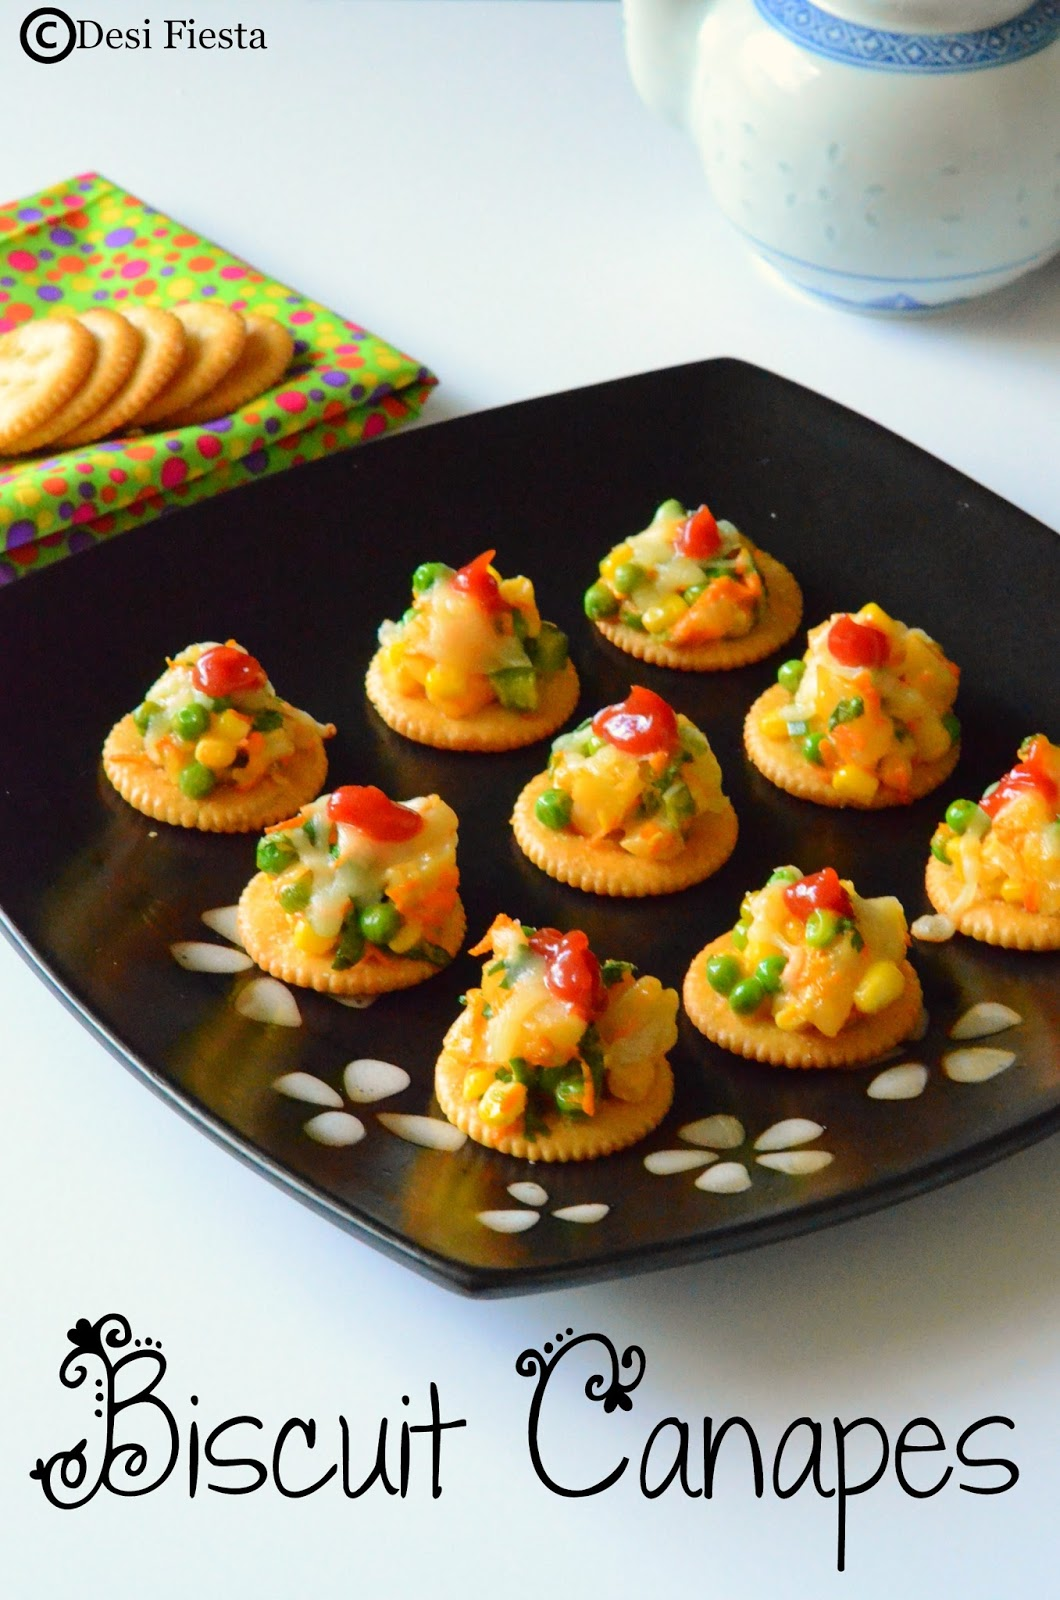 Desi fiesta biscuit canapes with vegetable topping for Vegetarian canape ideas